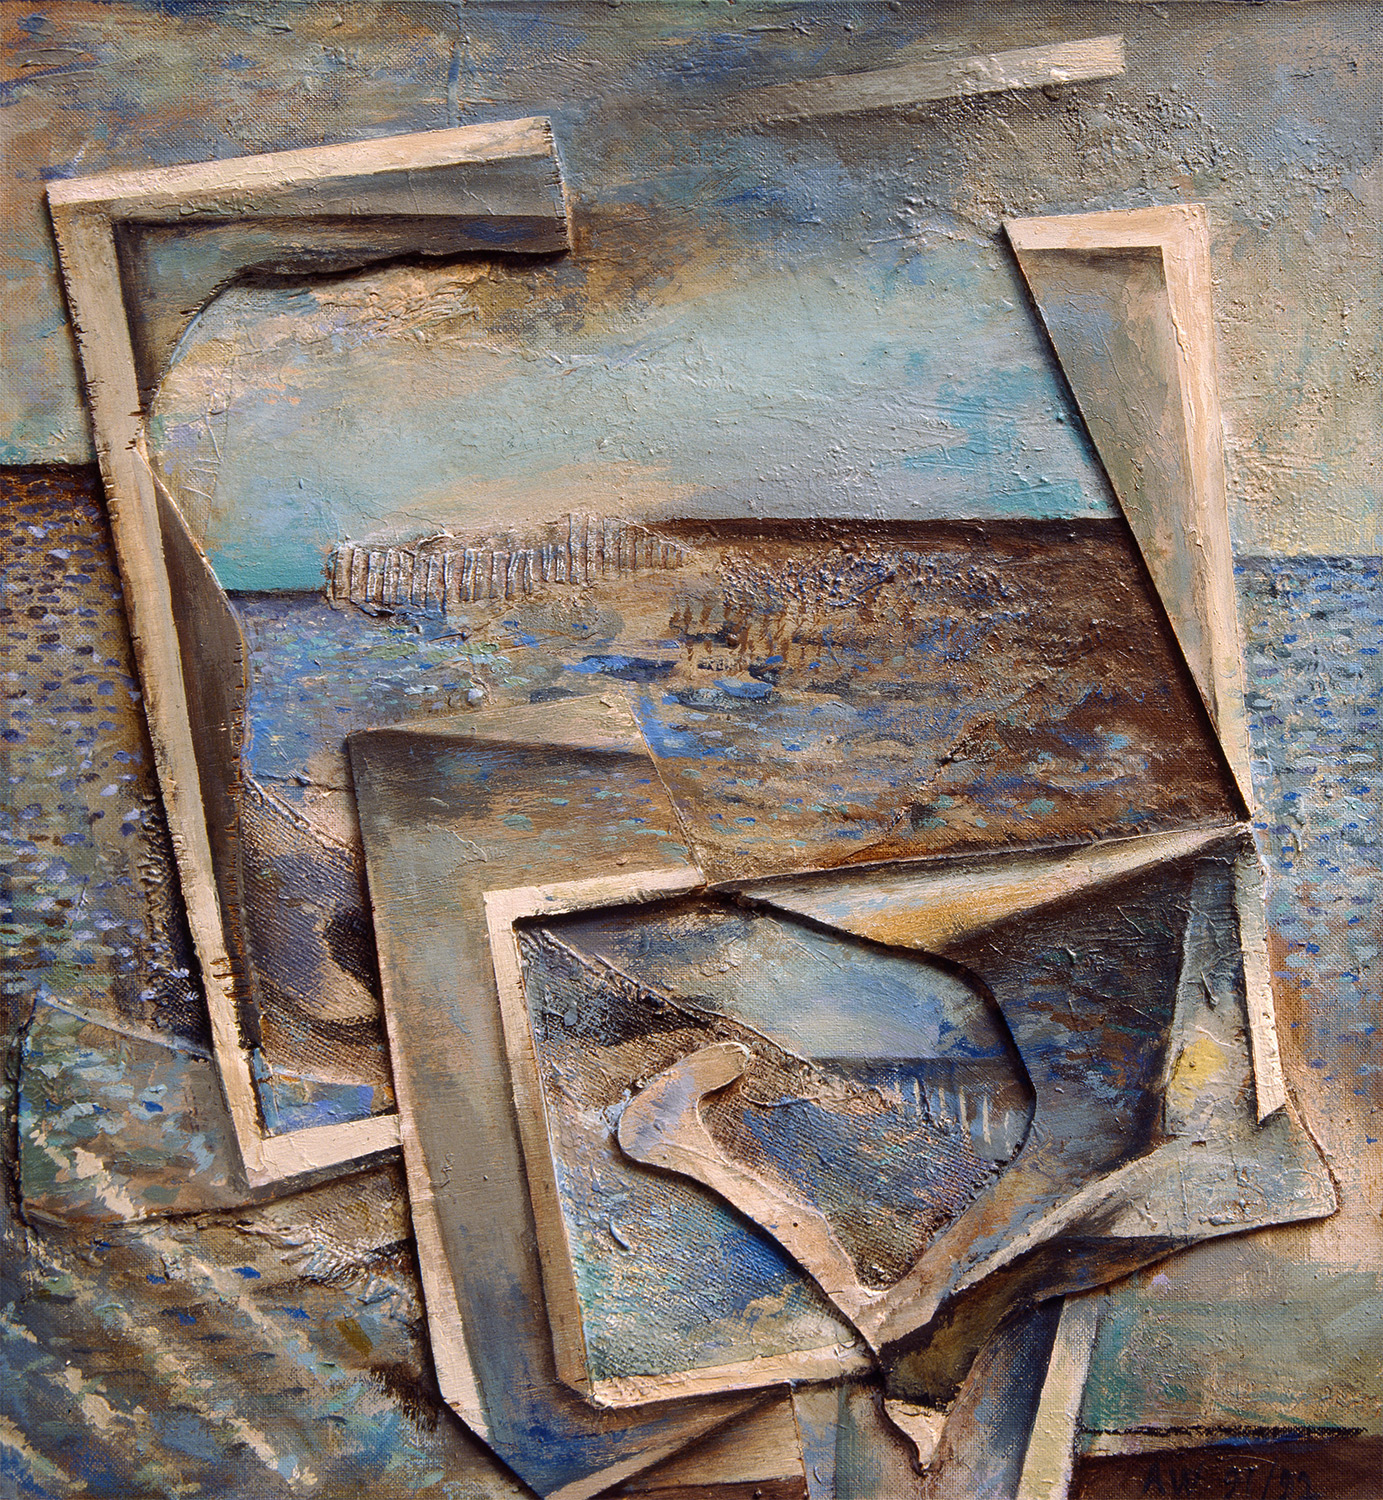 Homage To R.M. Seascape Painting  1991, 62 x 58 cm